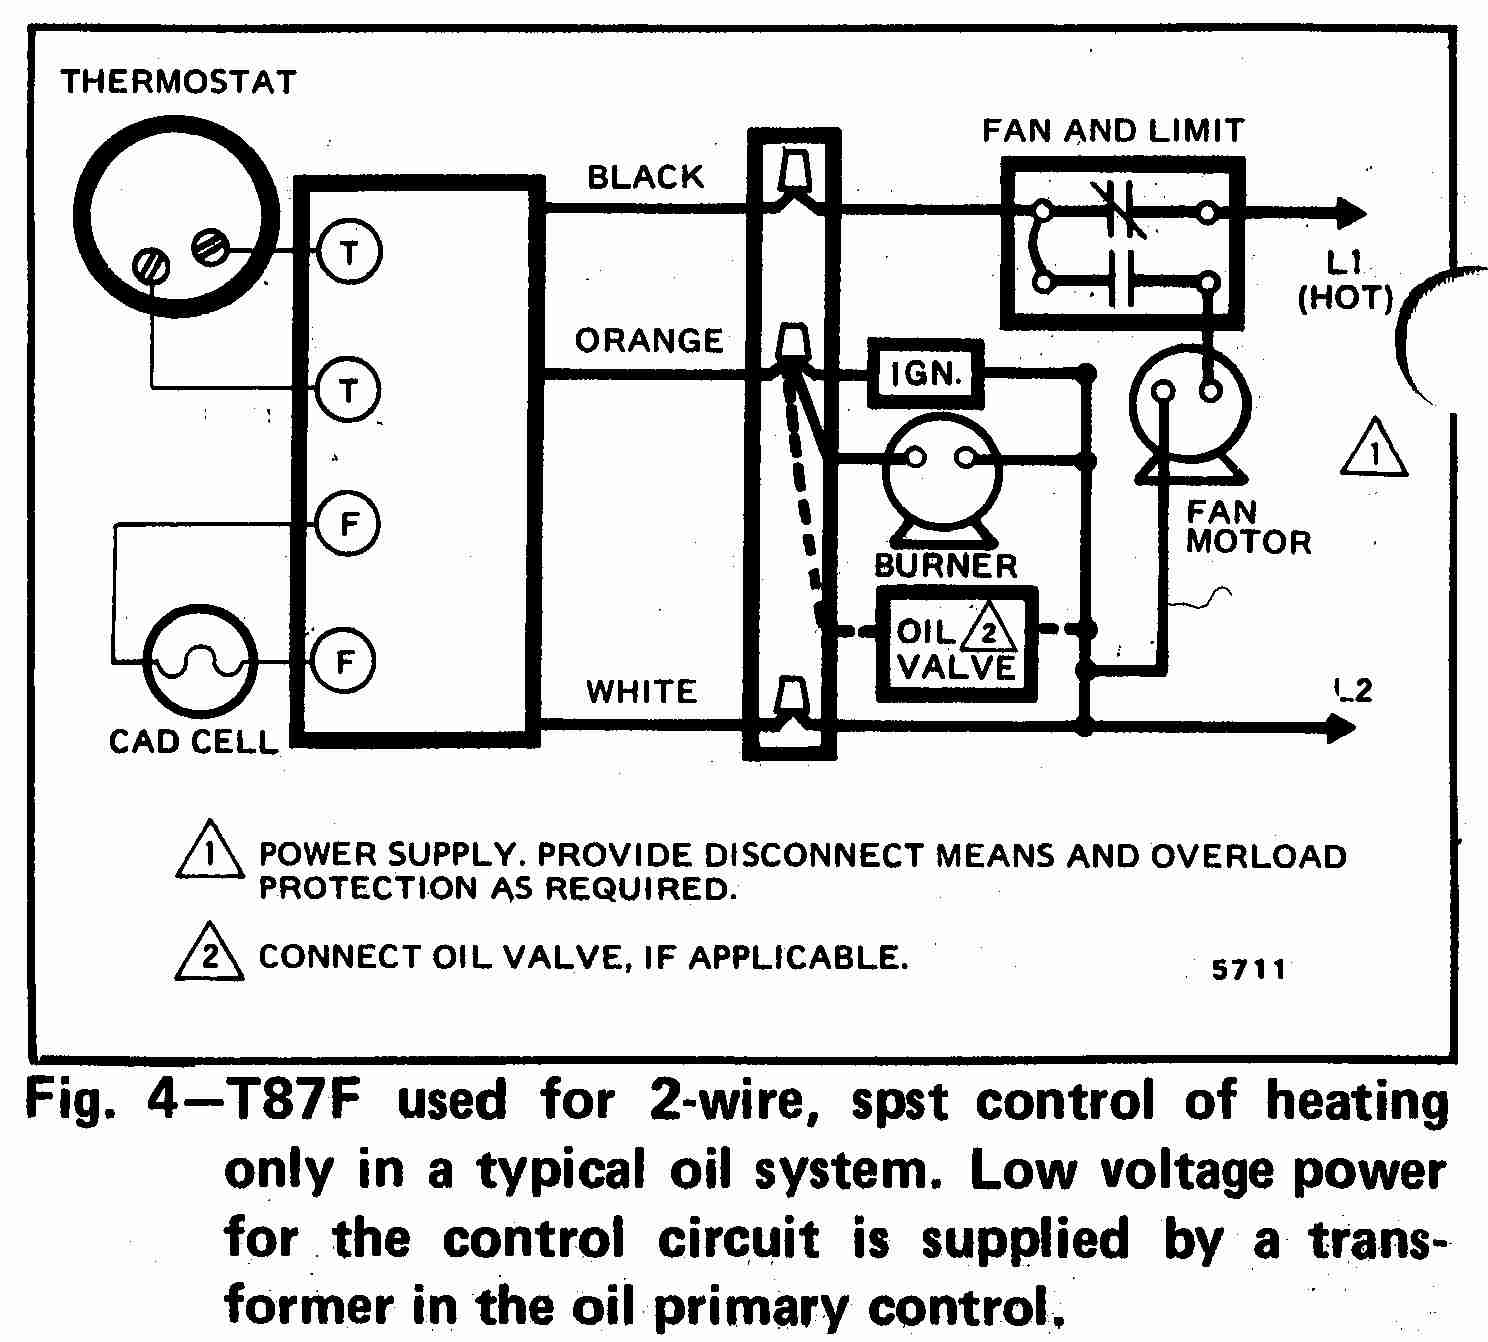 TT_T87F_0002_2W_DJF room thermostat wiring diagrams for hvac systems Marley Electric Baseboard Heaters Wiring at alyssarenee.co